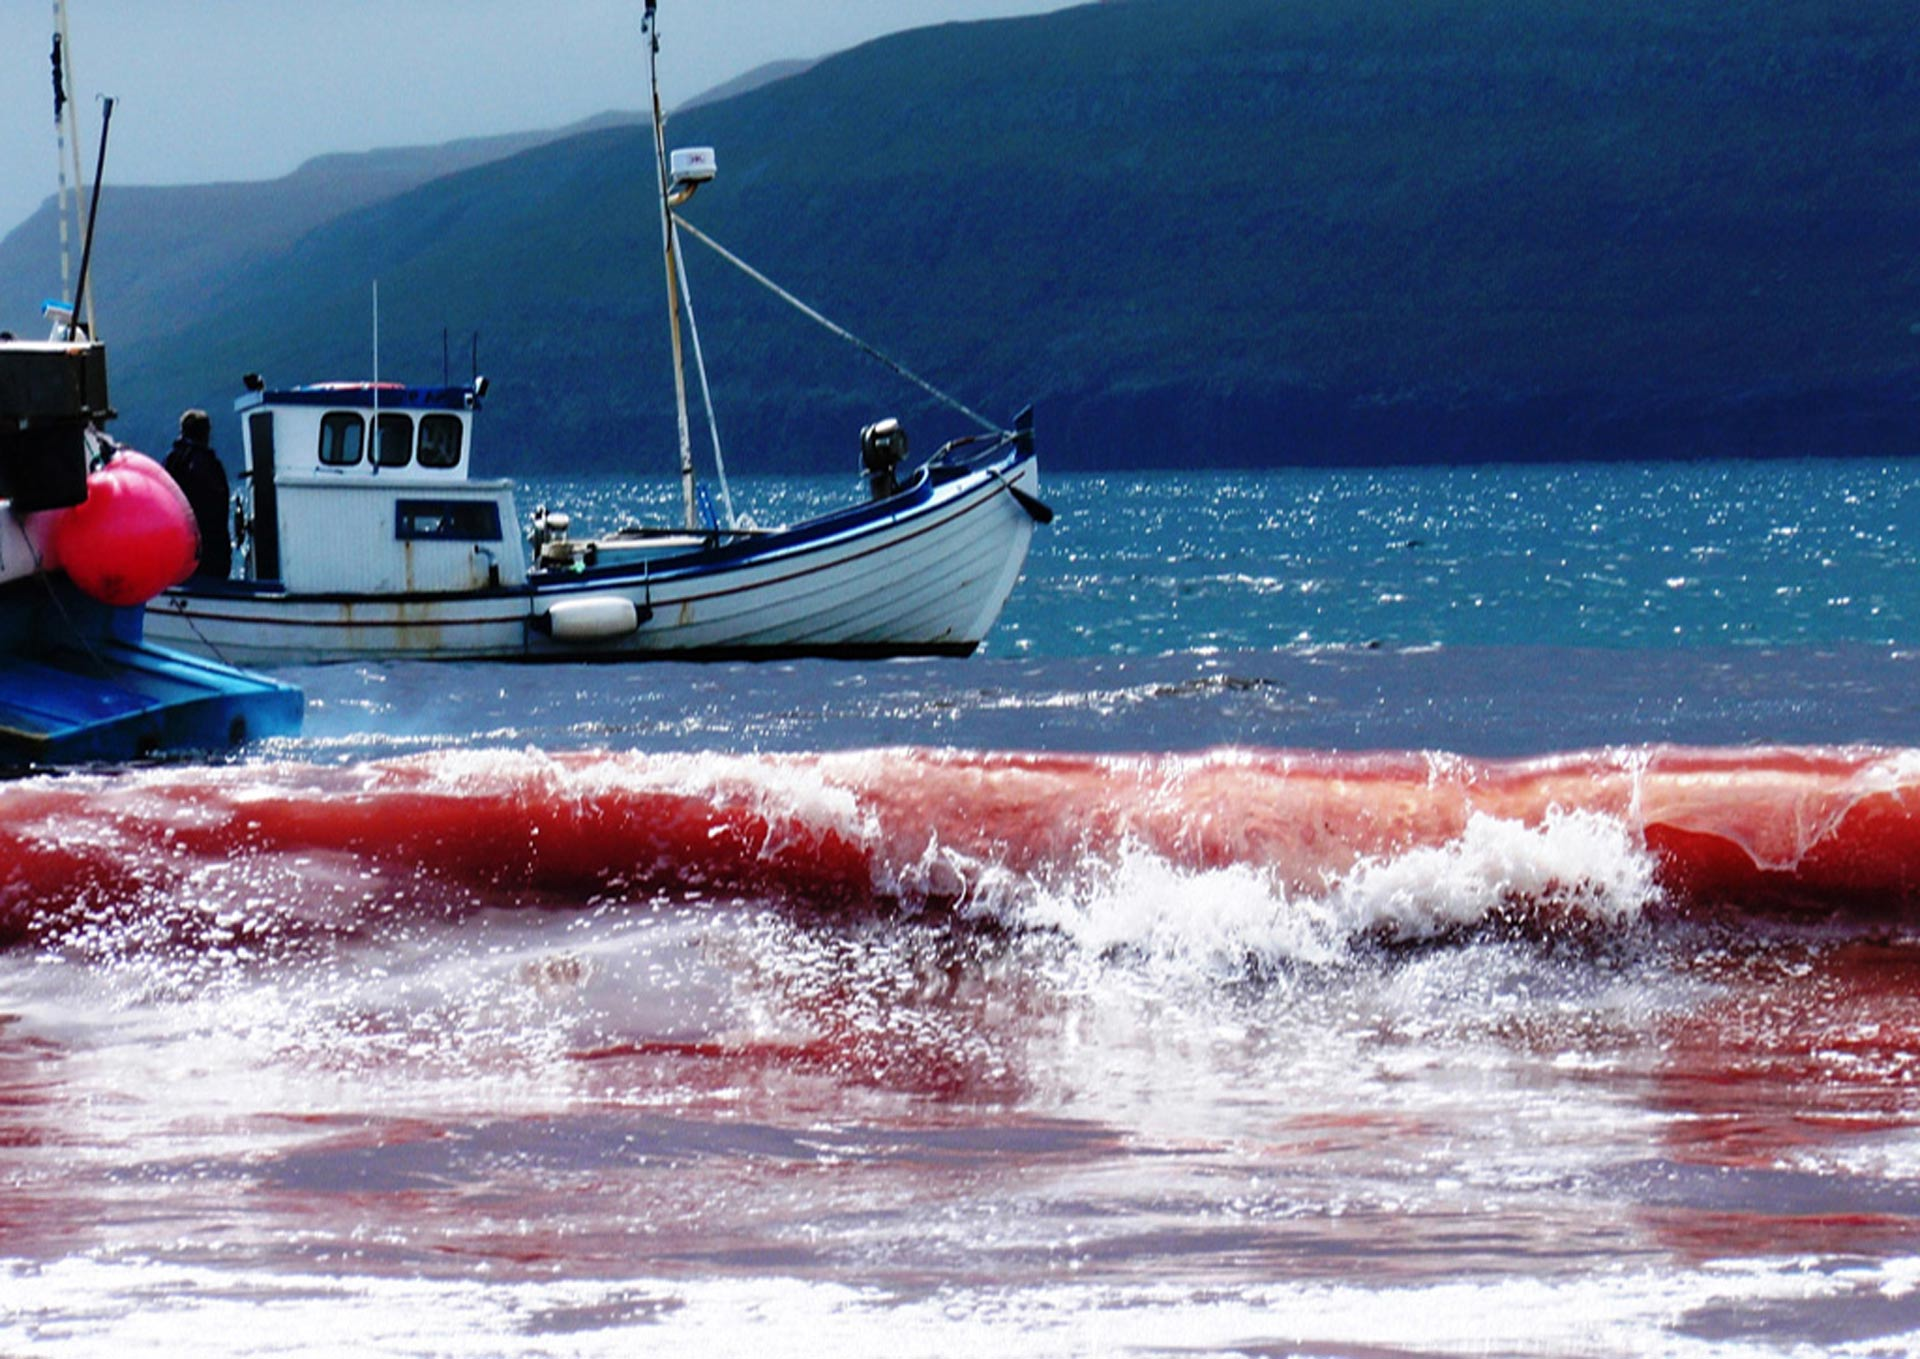 Red sea after a pilot whale hunt on June 5, 2012 in the Bay of Sandur, Faroe Islands. Photo: Hans Peter Roth